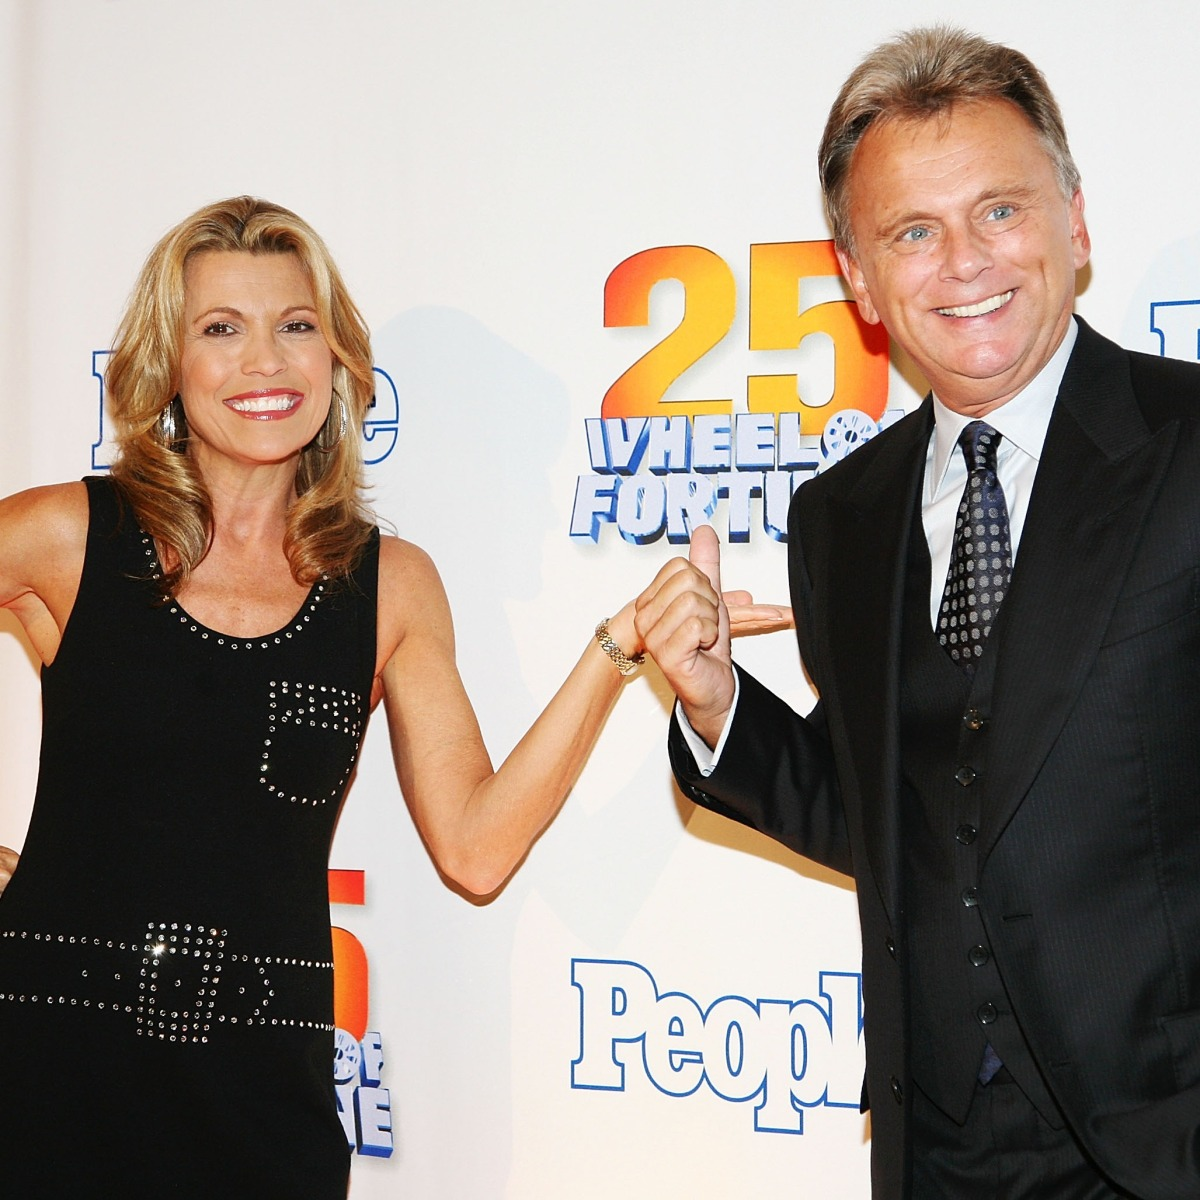 Are Pat Sajak and Vanna White Married? Find out Here!